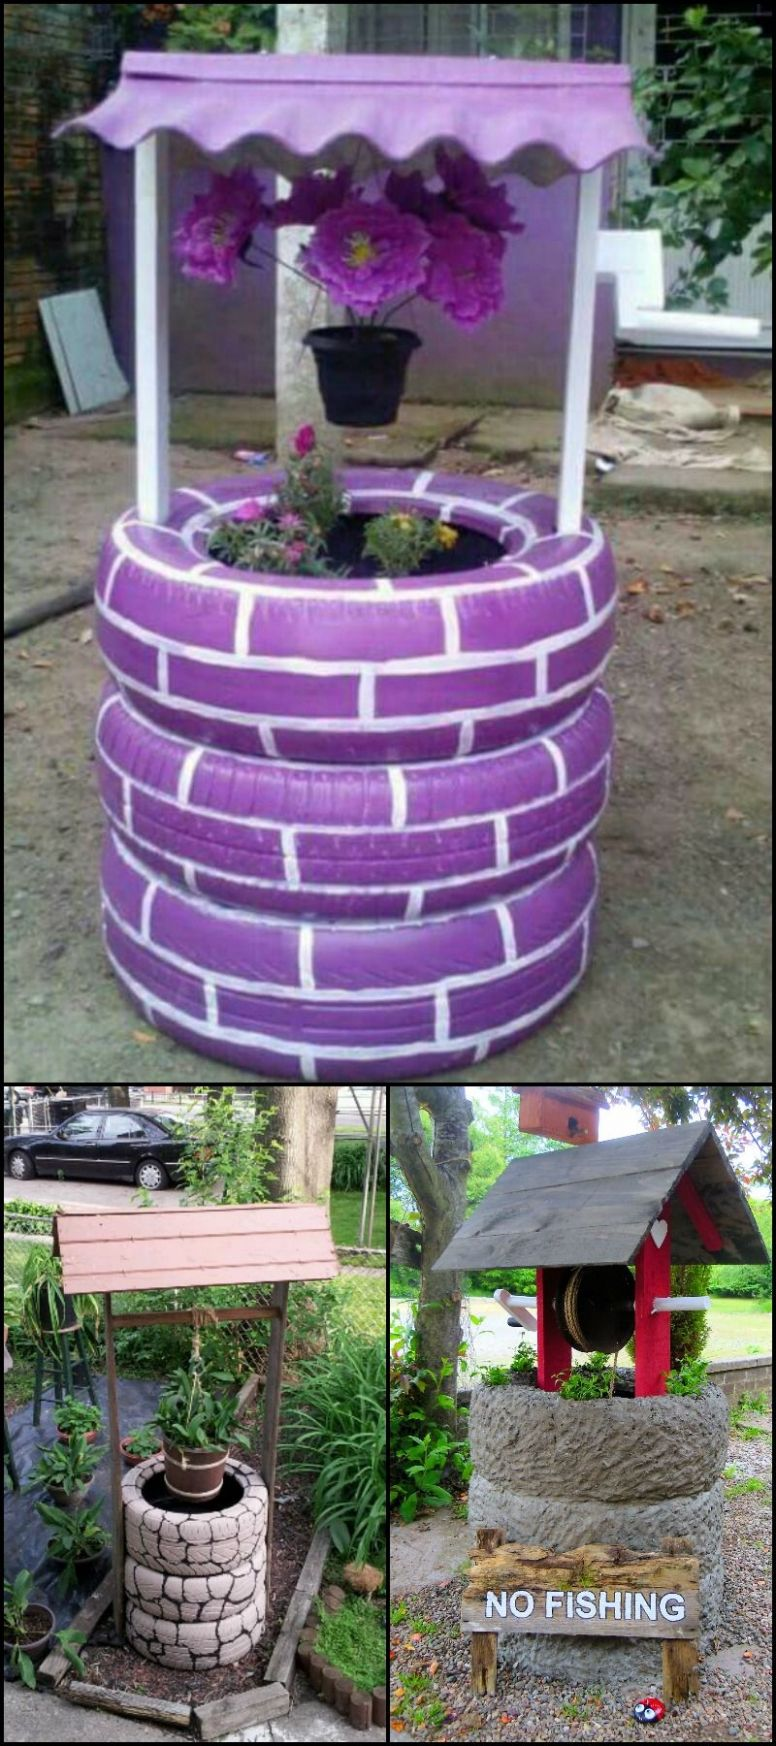 Wishing well planter made from recycled tires (With images) | Diy ...